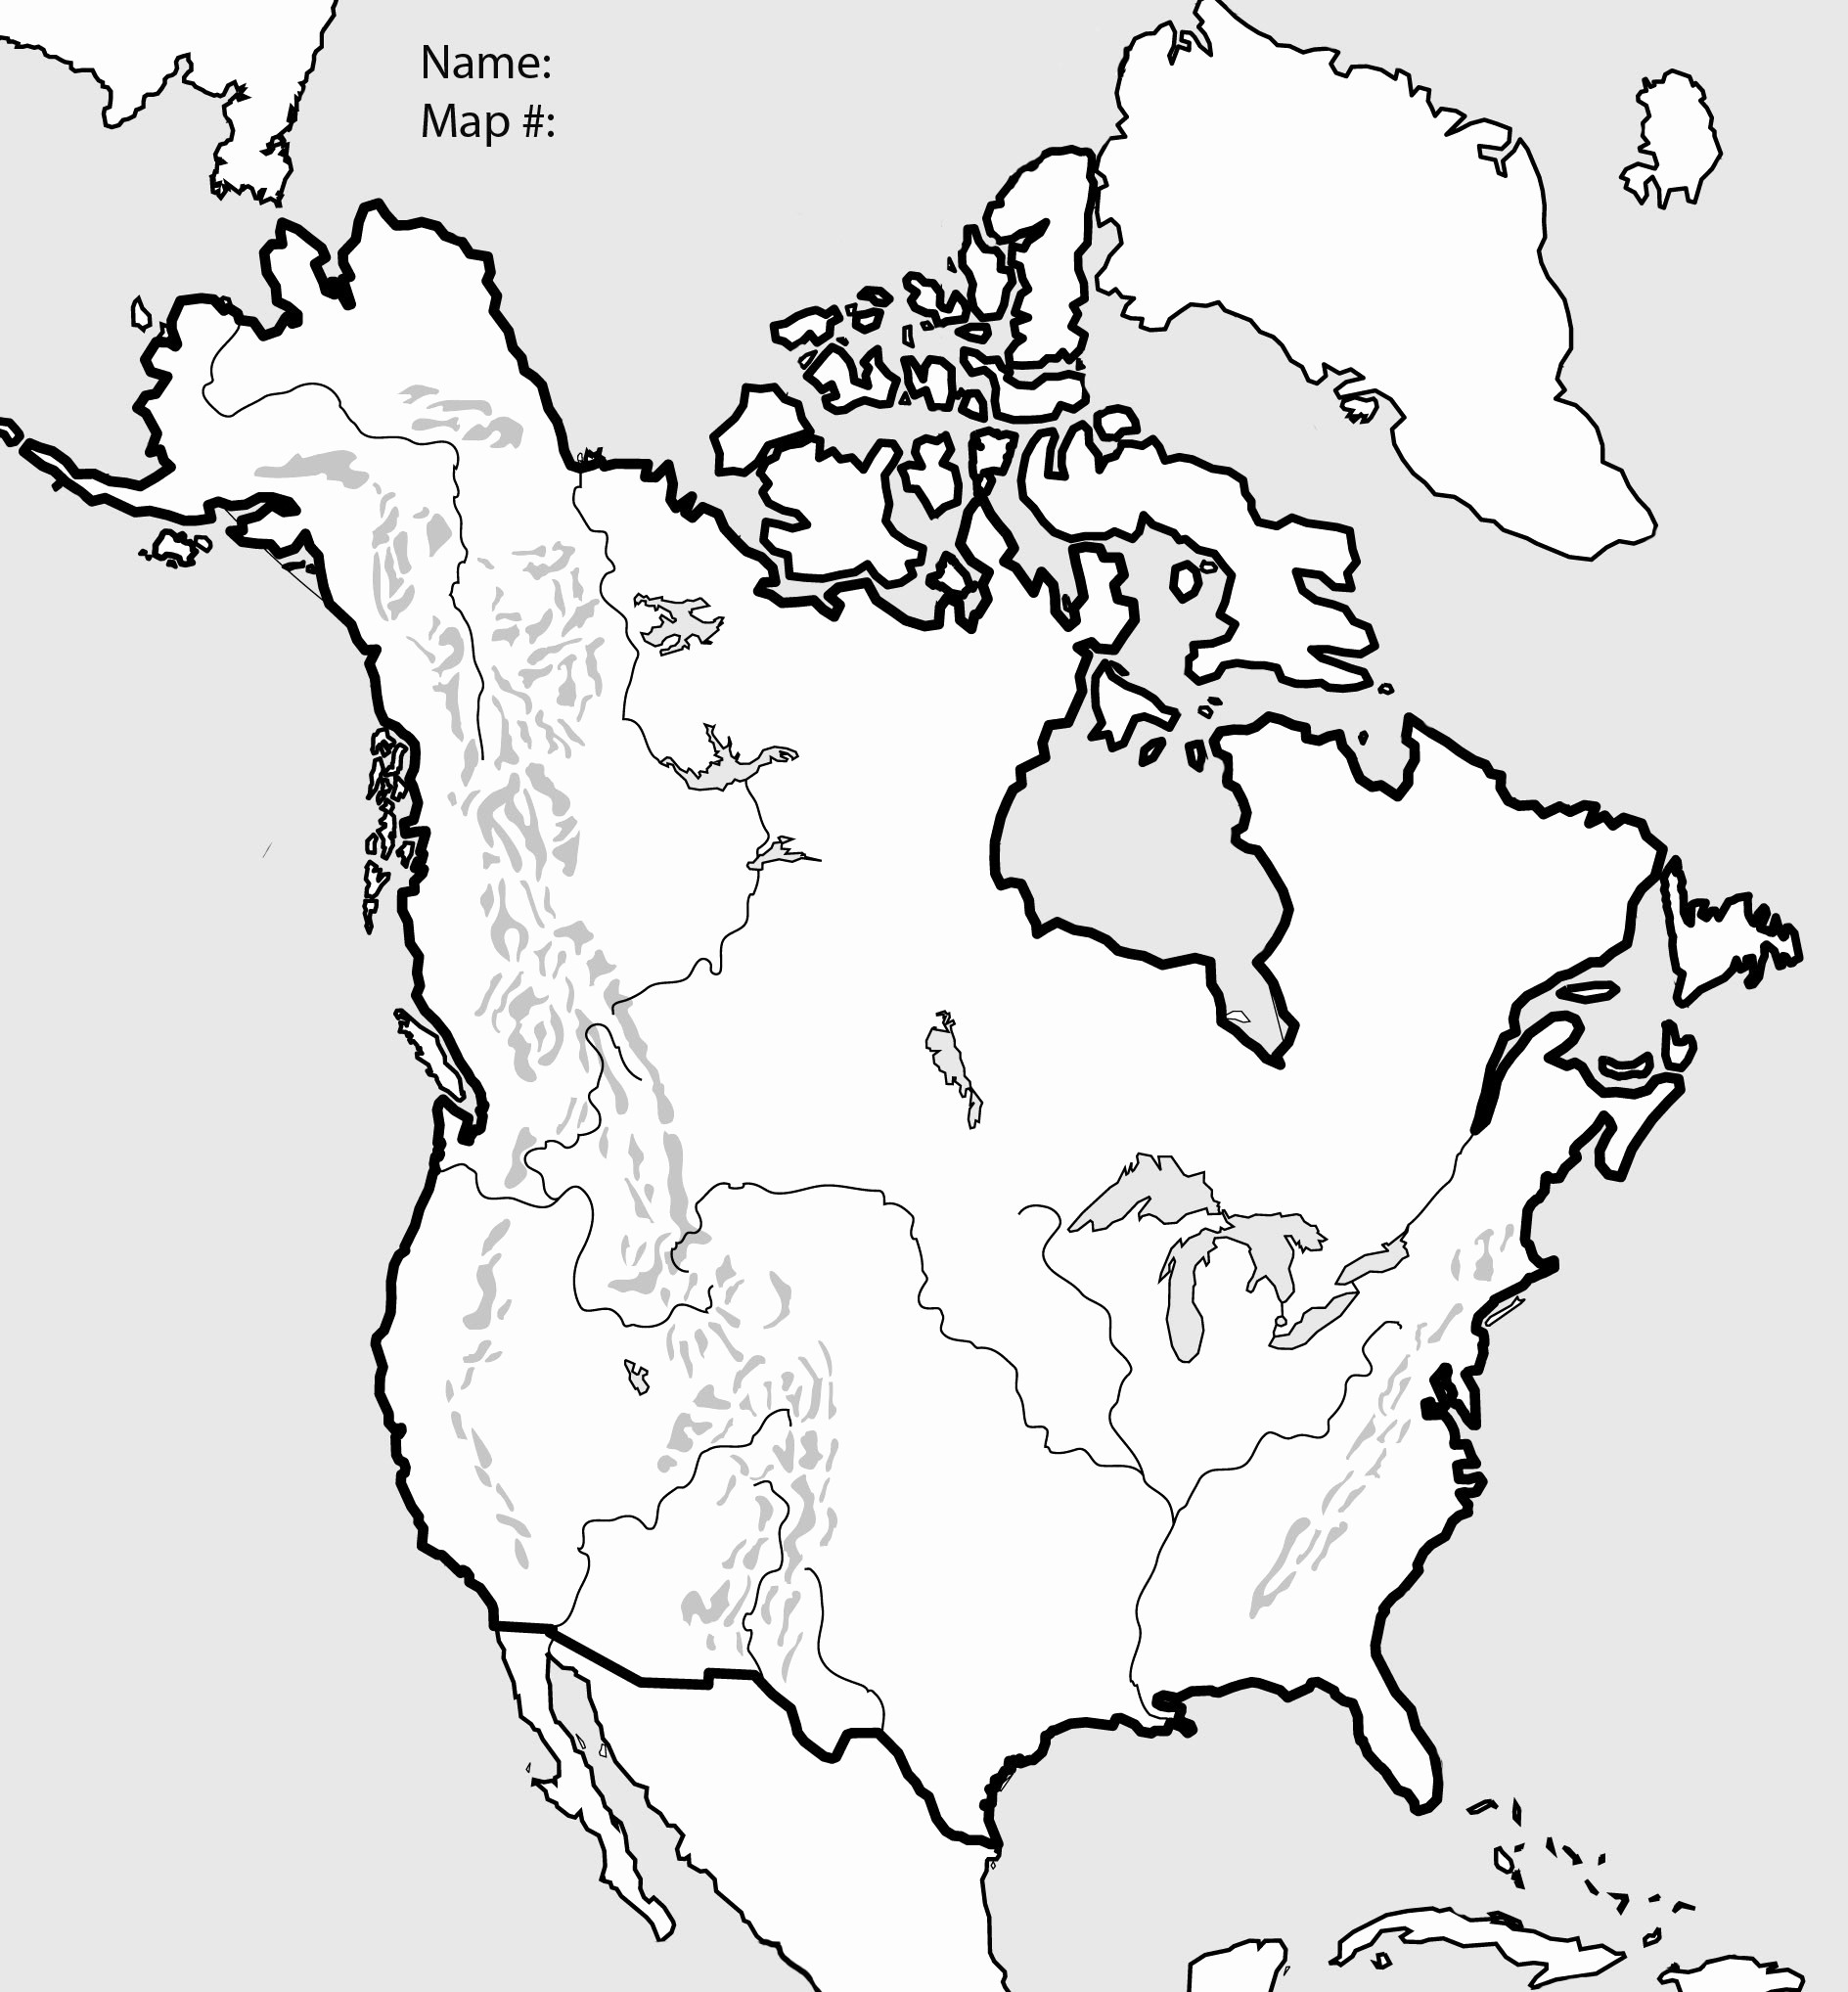 Free Editable Map Of Us Luxury Free Editable Us and Canada Map Marinatower